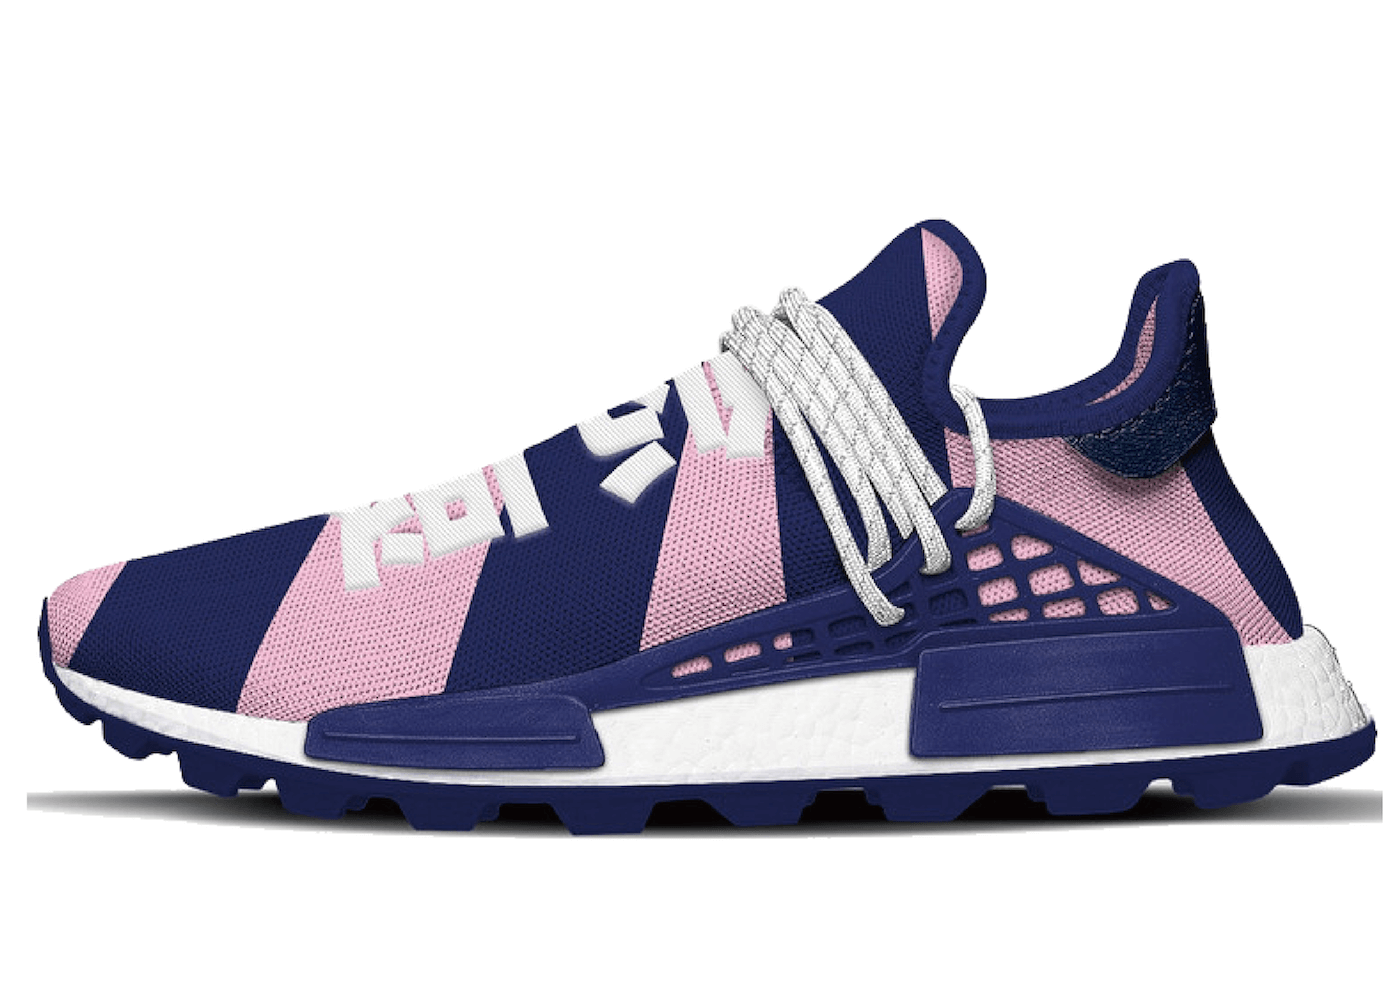 Adidas NMD Hu Pharrell x Billionaire Boys Club Navy Pinkの写真